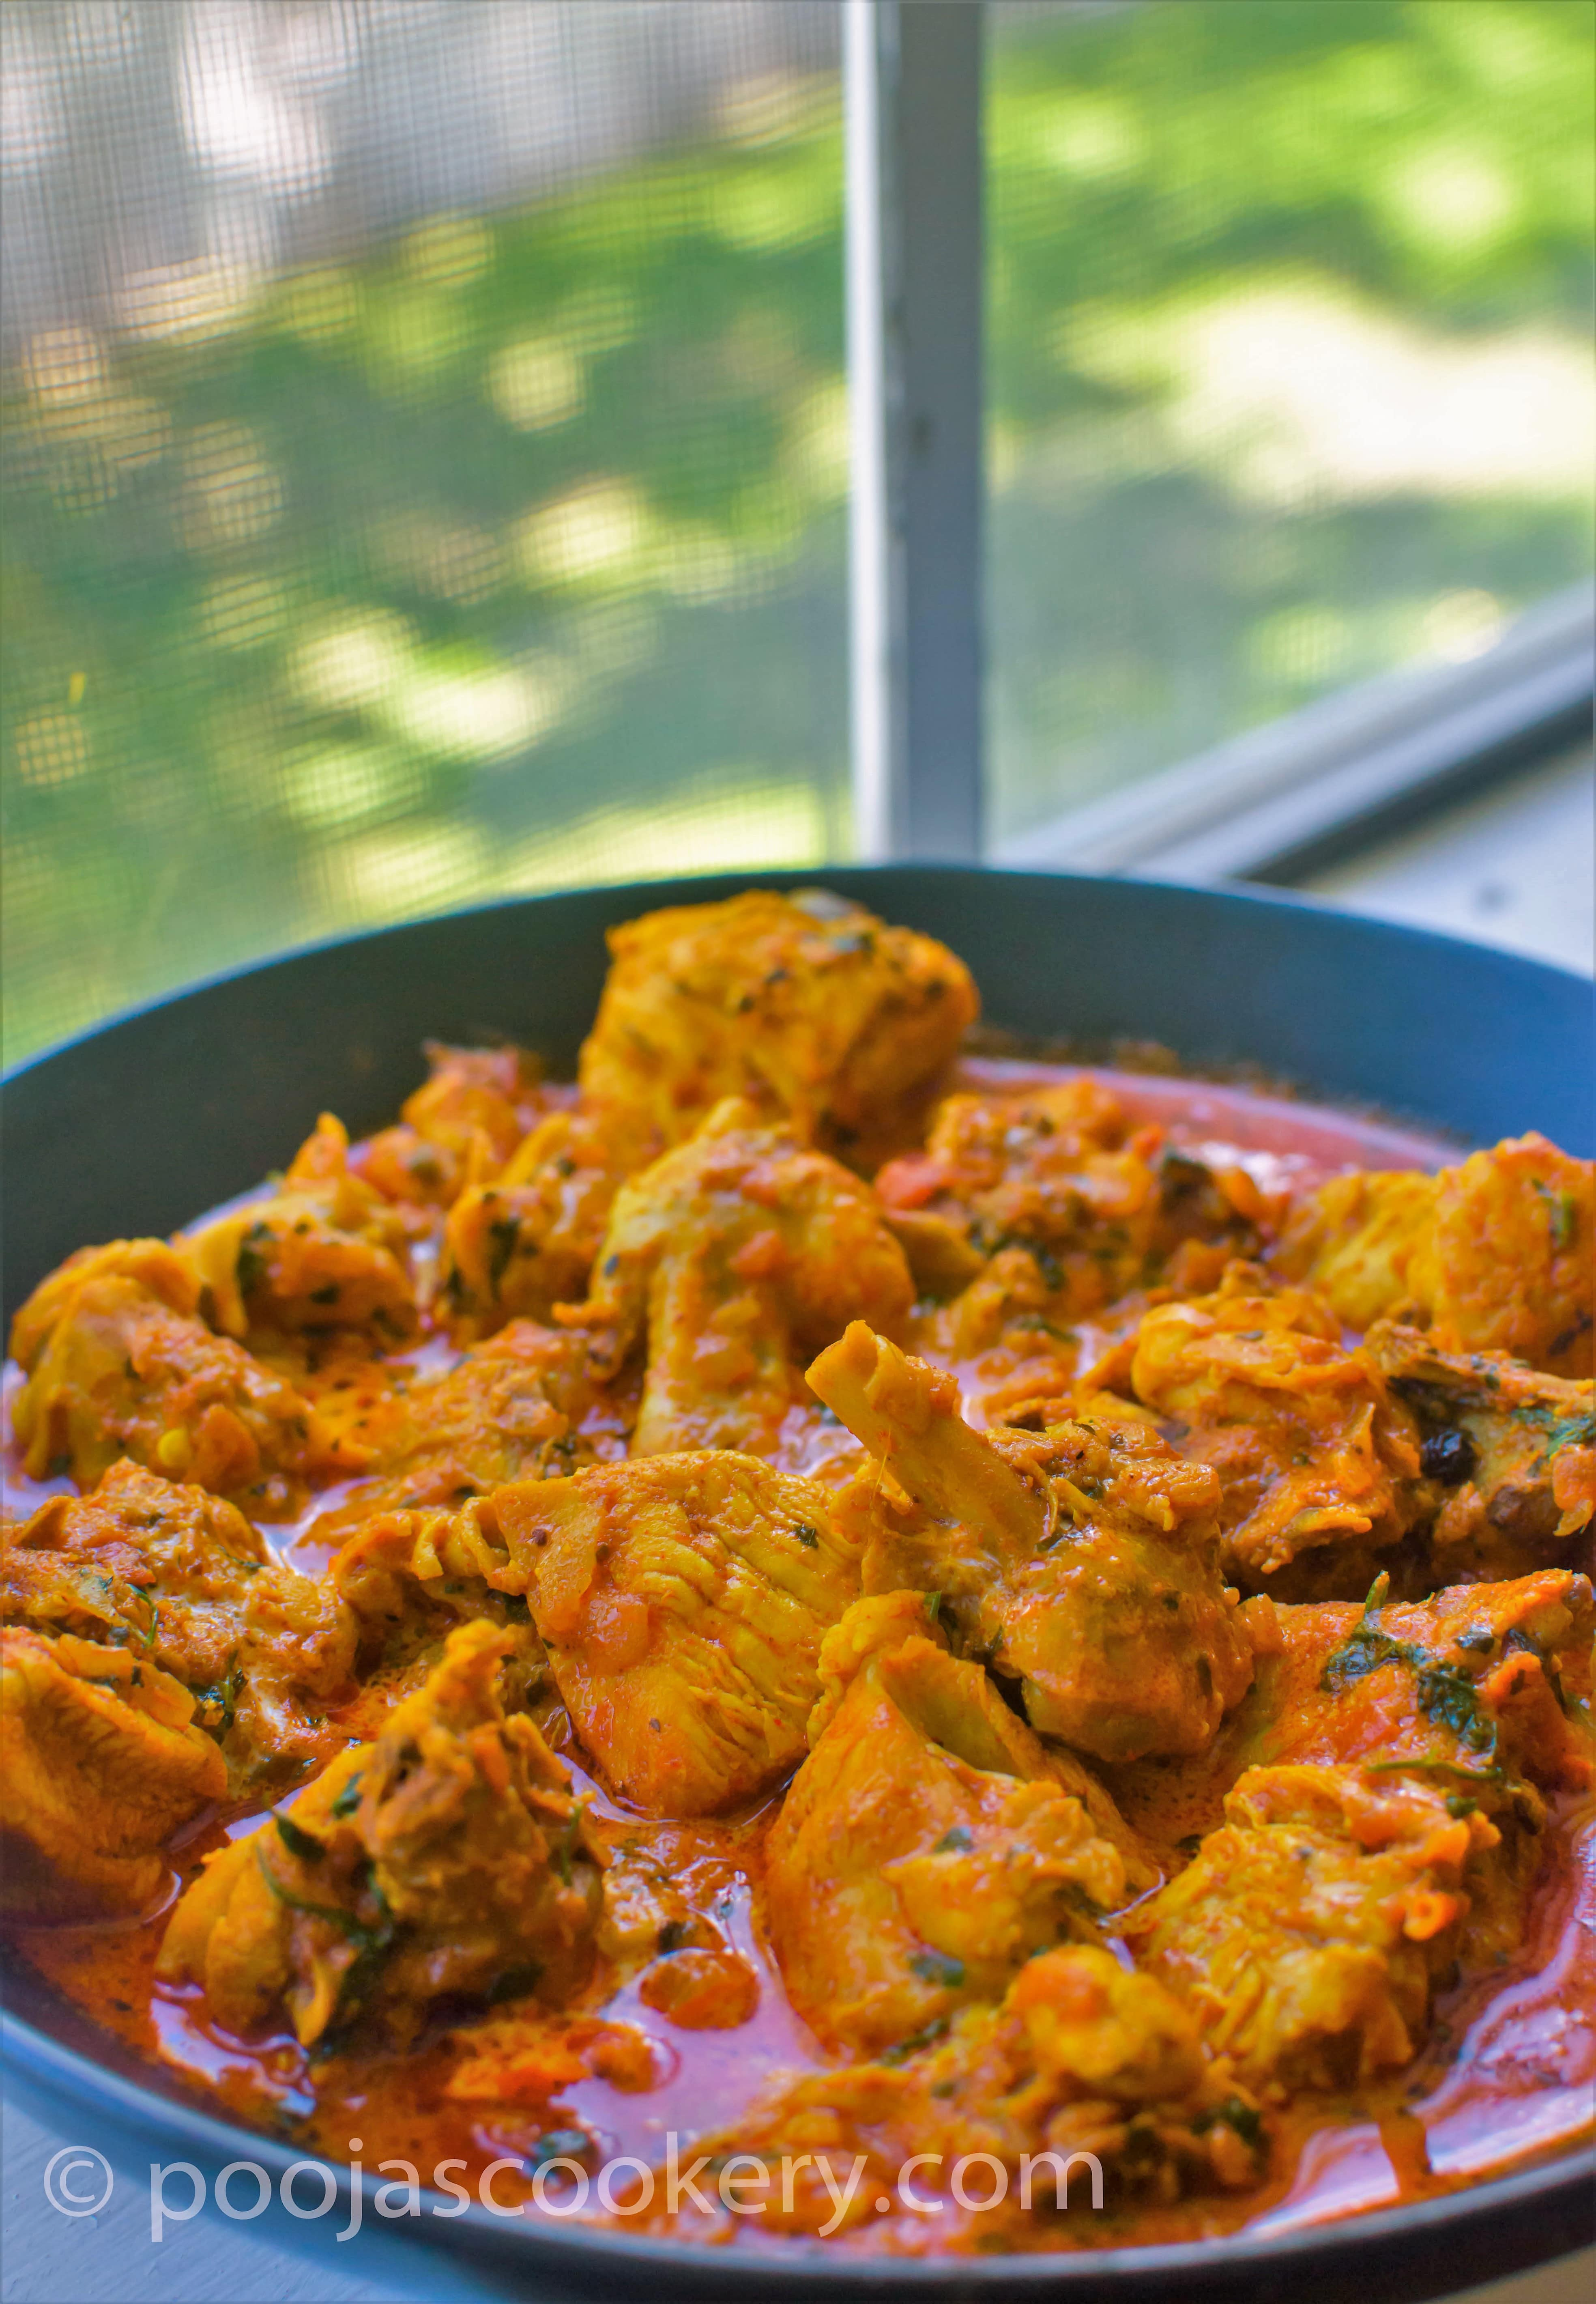 Simple tasty tandoori chicken curry recipe poojas cookery tandoori chicken curry poojascookery forumfinder Choice Image